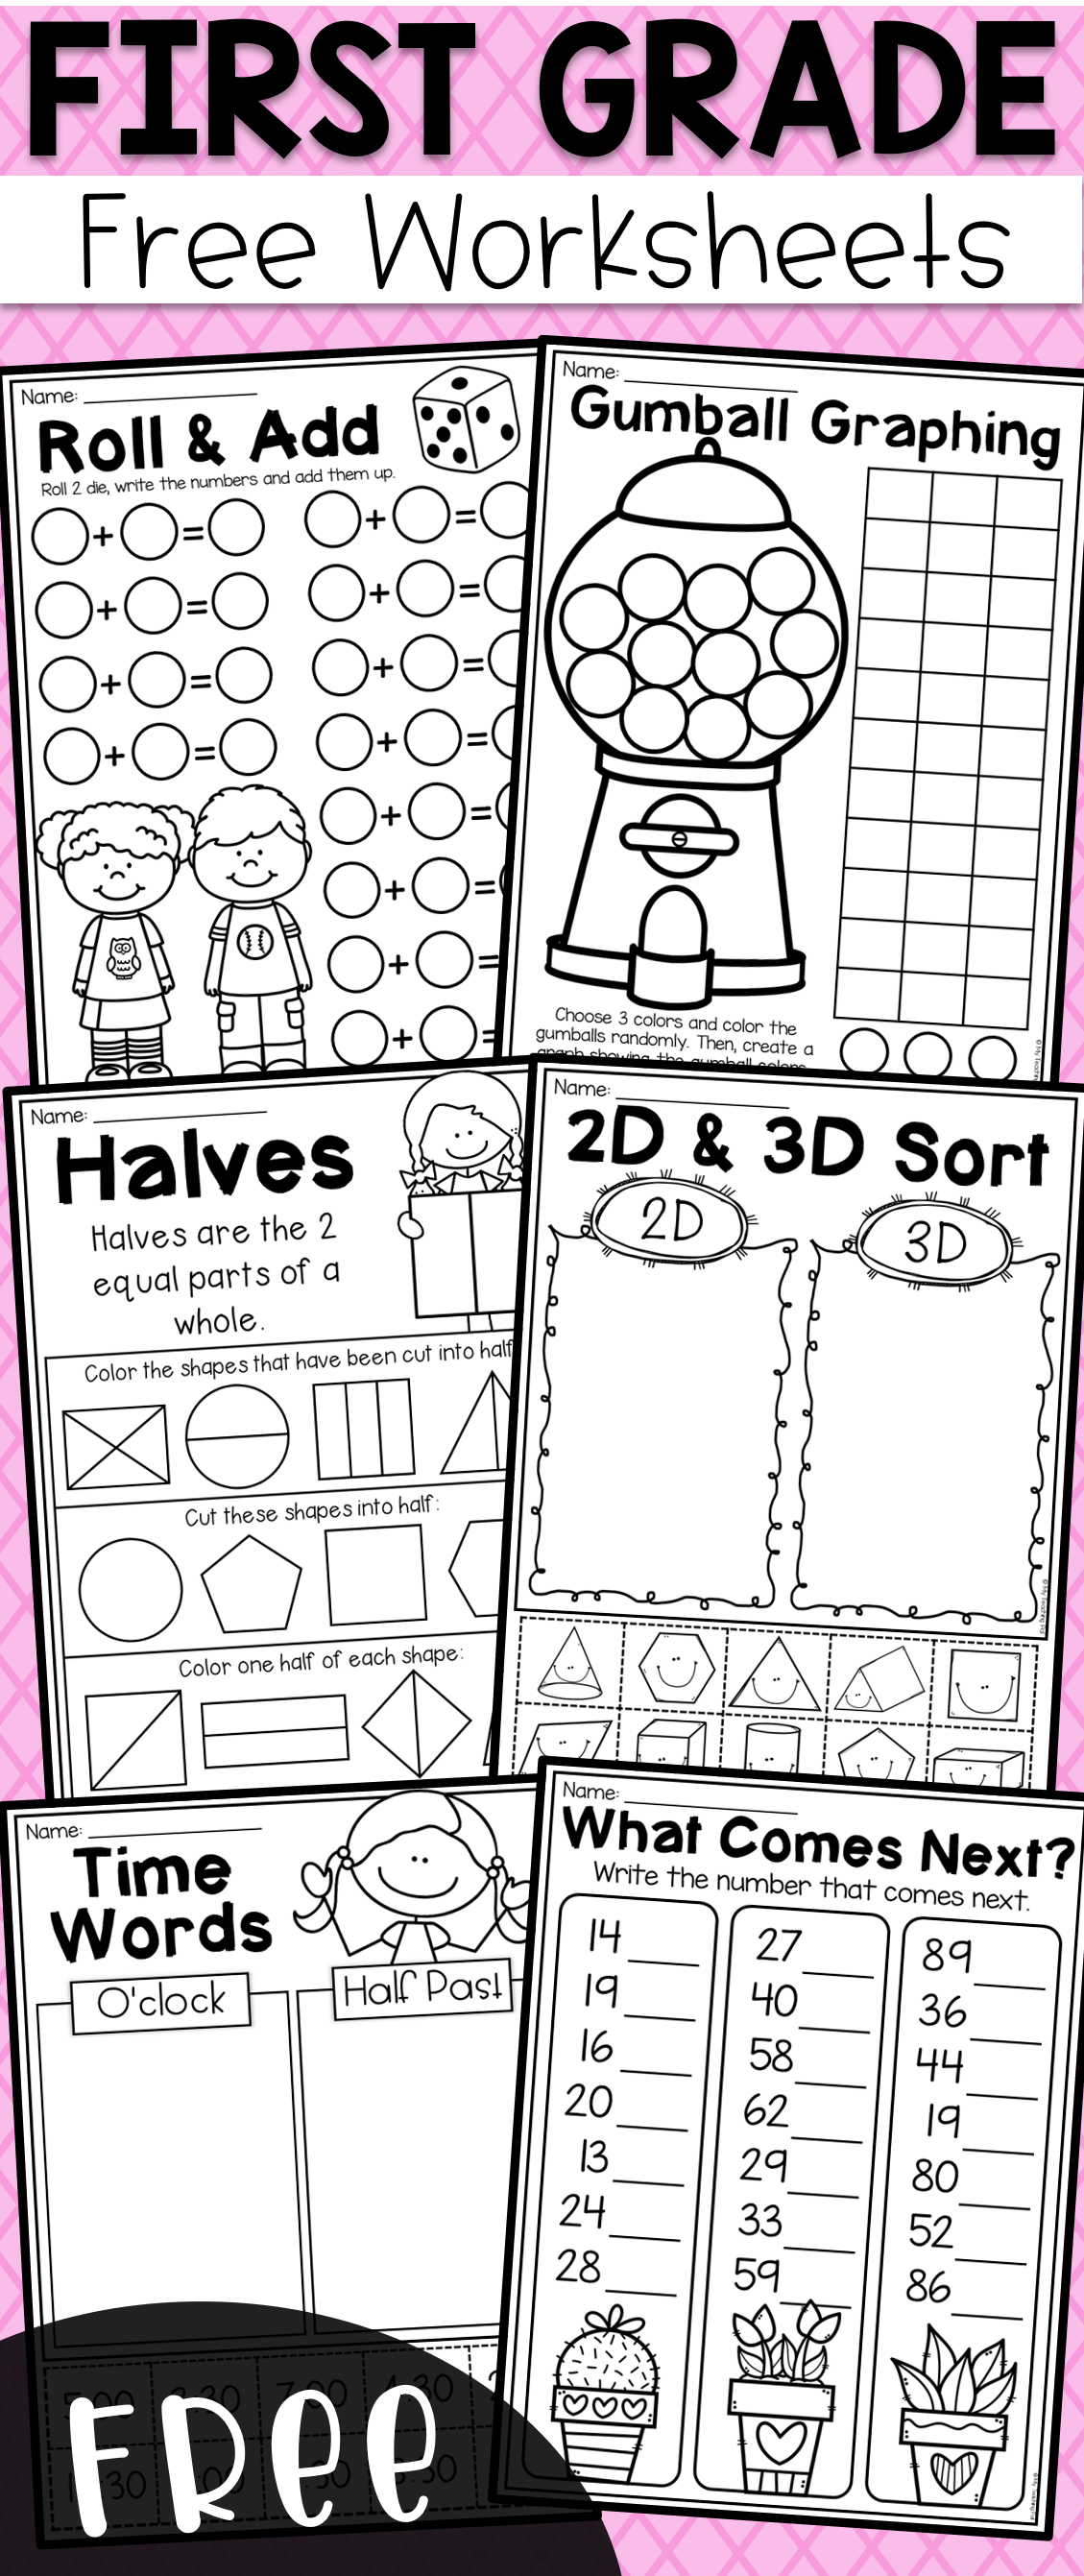 First Grade Math Worksheets Of Free First Grade Math